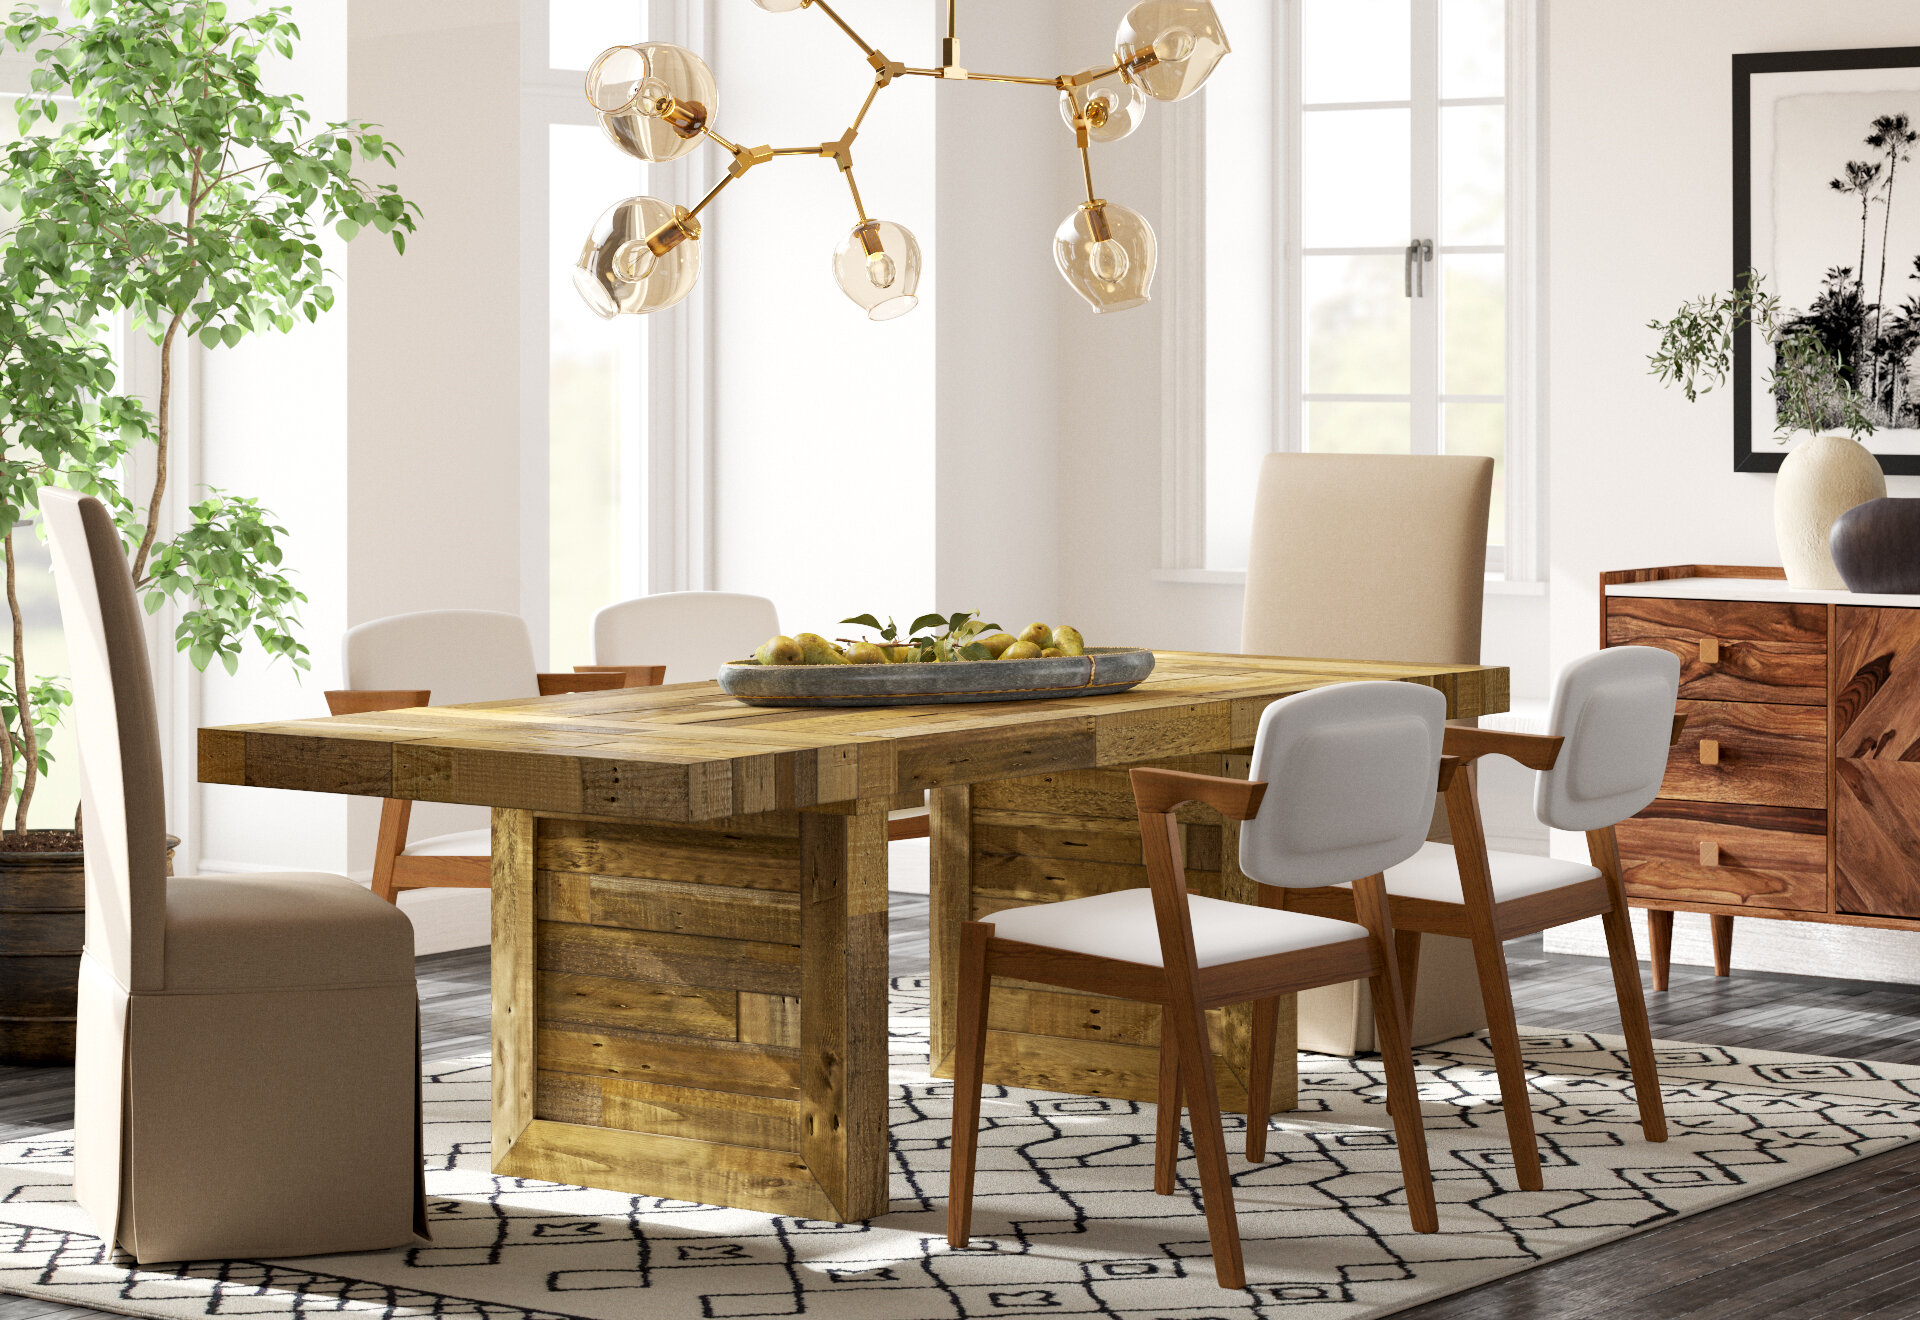 How to Mix & Match Dining Chairs  Joss & Main